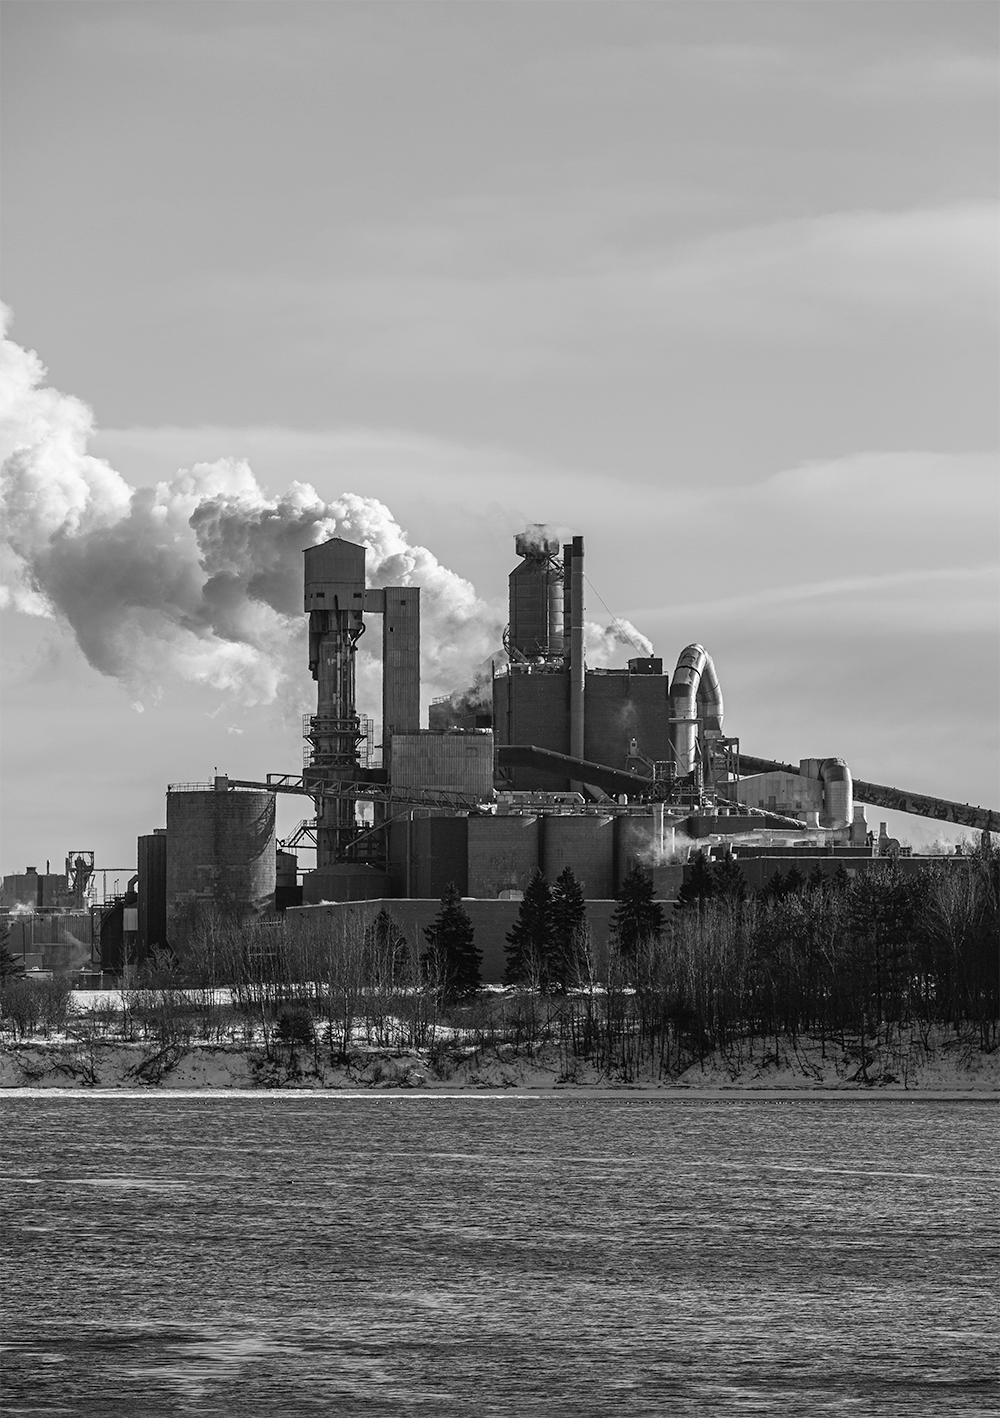 As of January 31, the Northern Pulp mill will be legally prohibited from piping chemical waste into Boat Harbour. But with a legacy of broken promises as dirty as the sludge choking the estuary, and a company taking the government to court to keep its mill running, what does this deadline mean to people who see Boat Harbour as a loss they can never get back? - ZANE WOODFORD